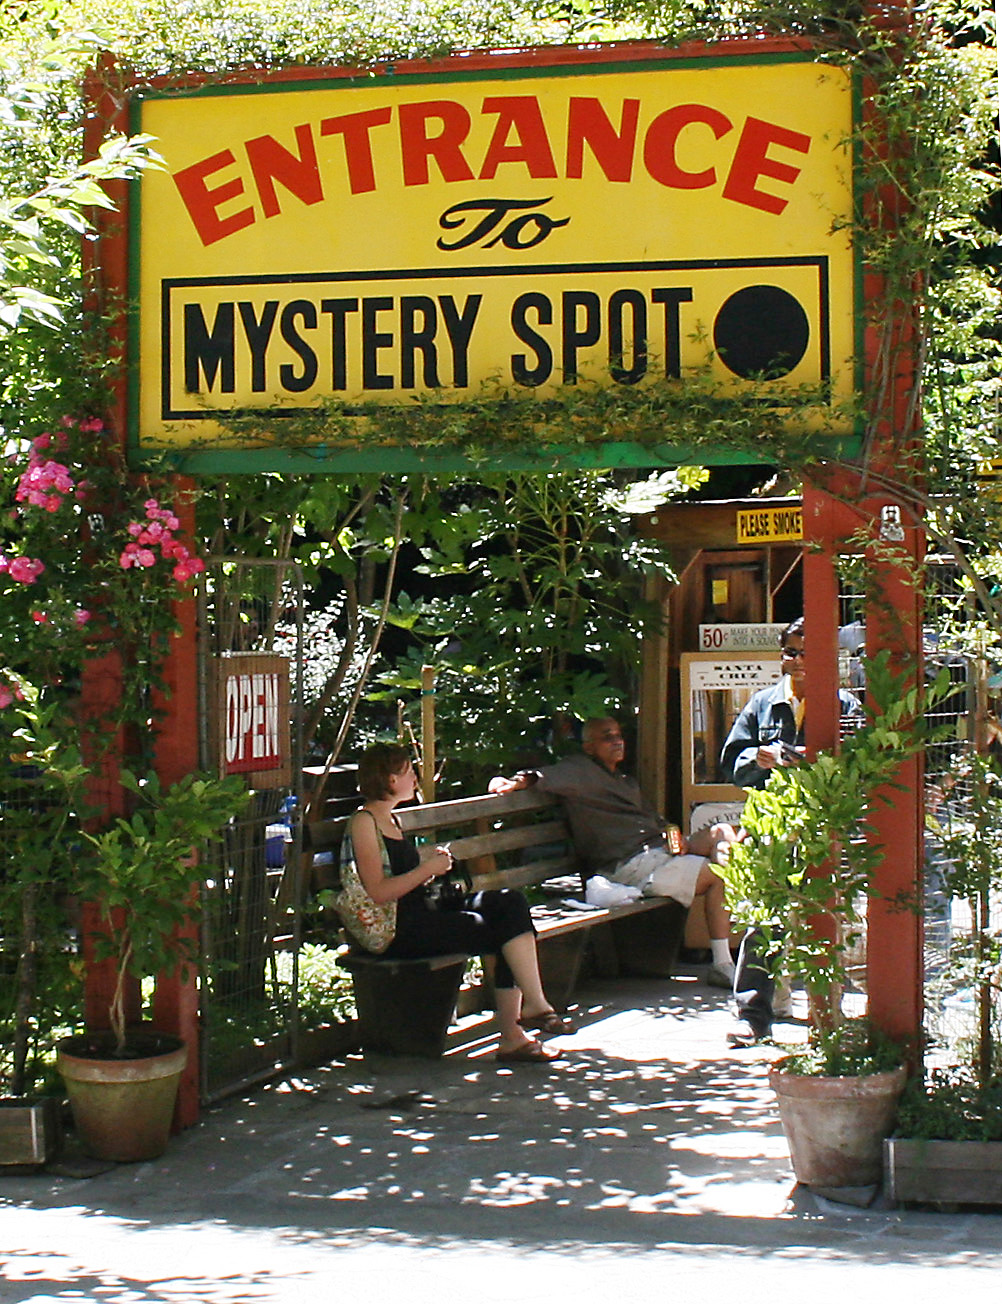 Best Amusement Park in Michigan-St. Ignace Mystery Spot